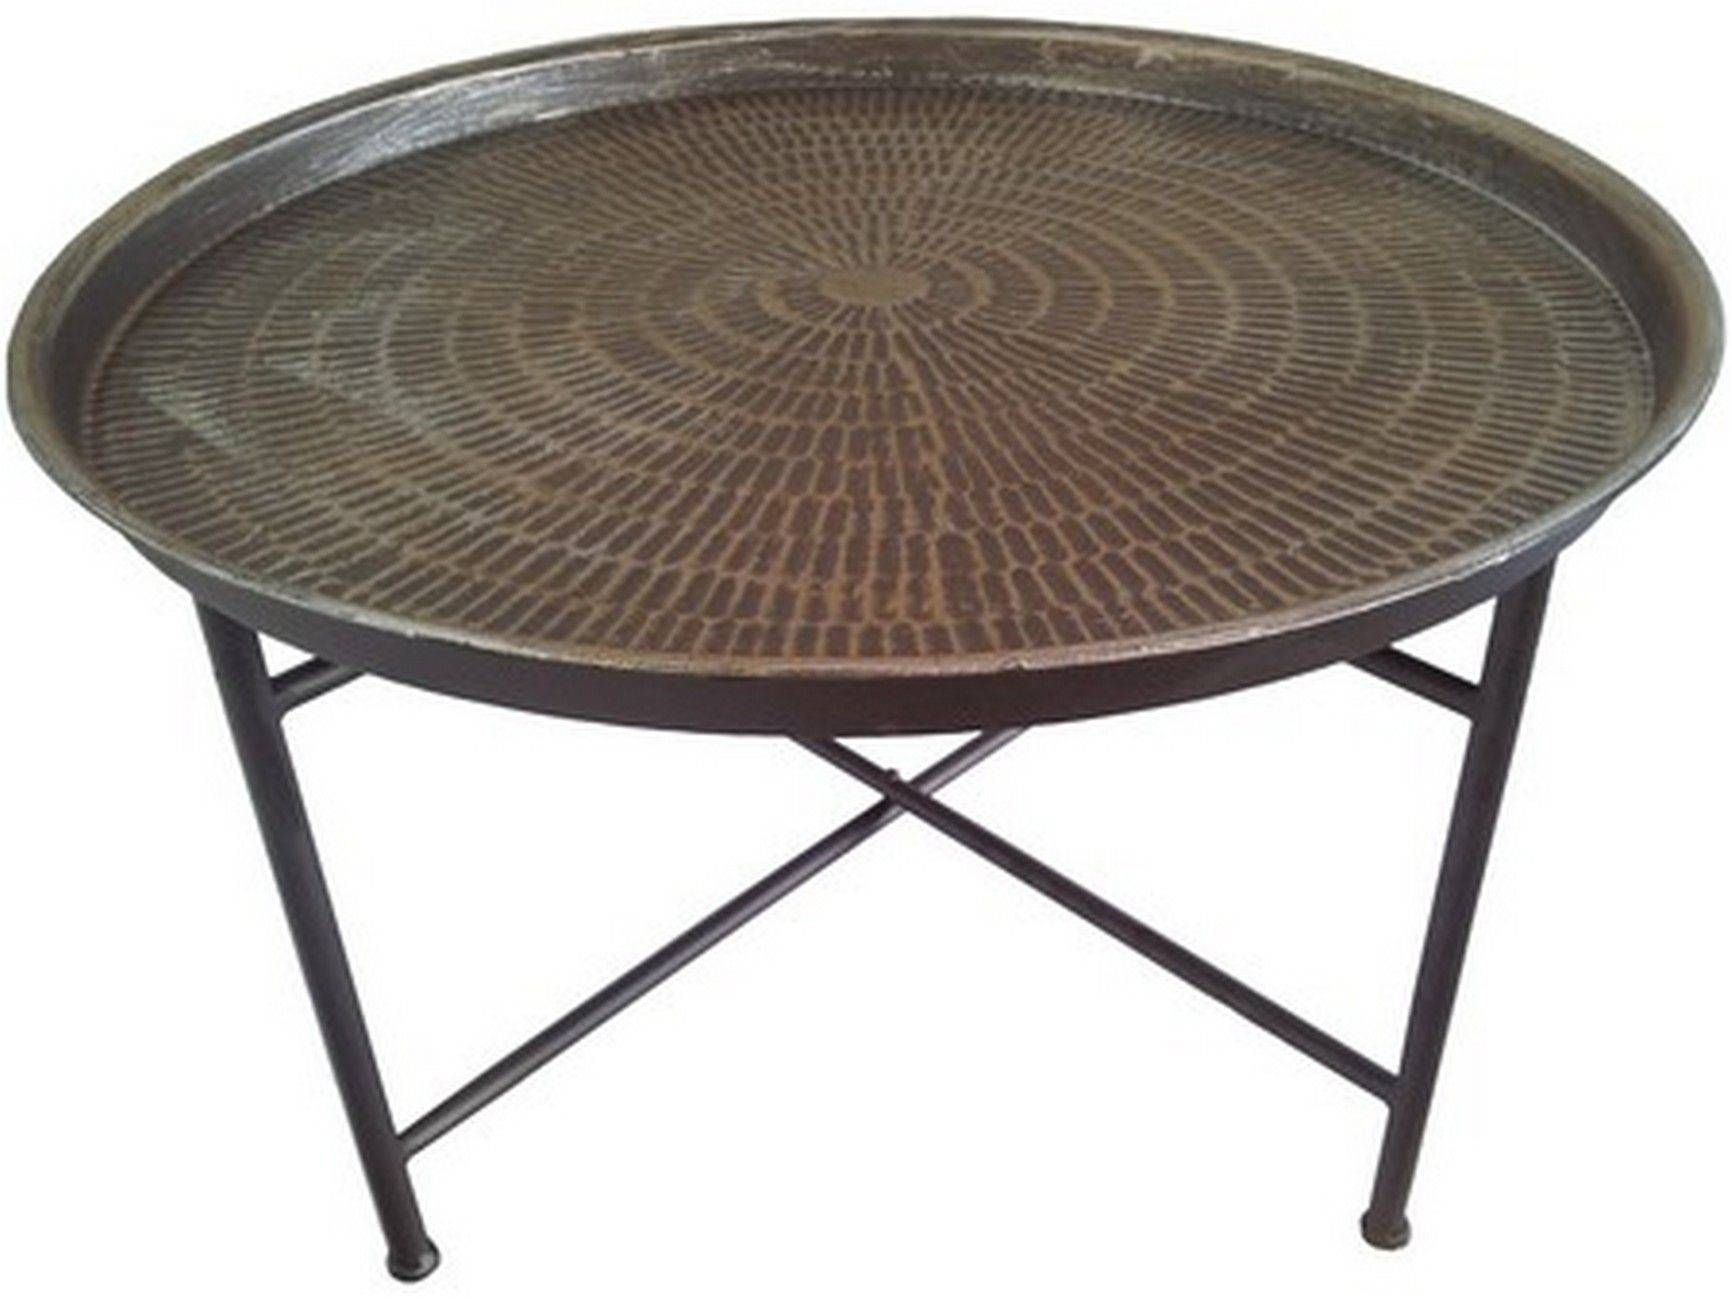 Bali Hammered Metal Round Coffee Table - Cotterell & Co. Online pertaining to Round Chrome Coffee Tables (Image 2 of 30)